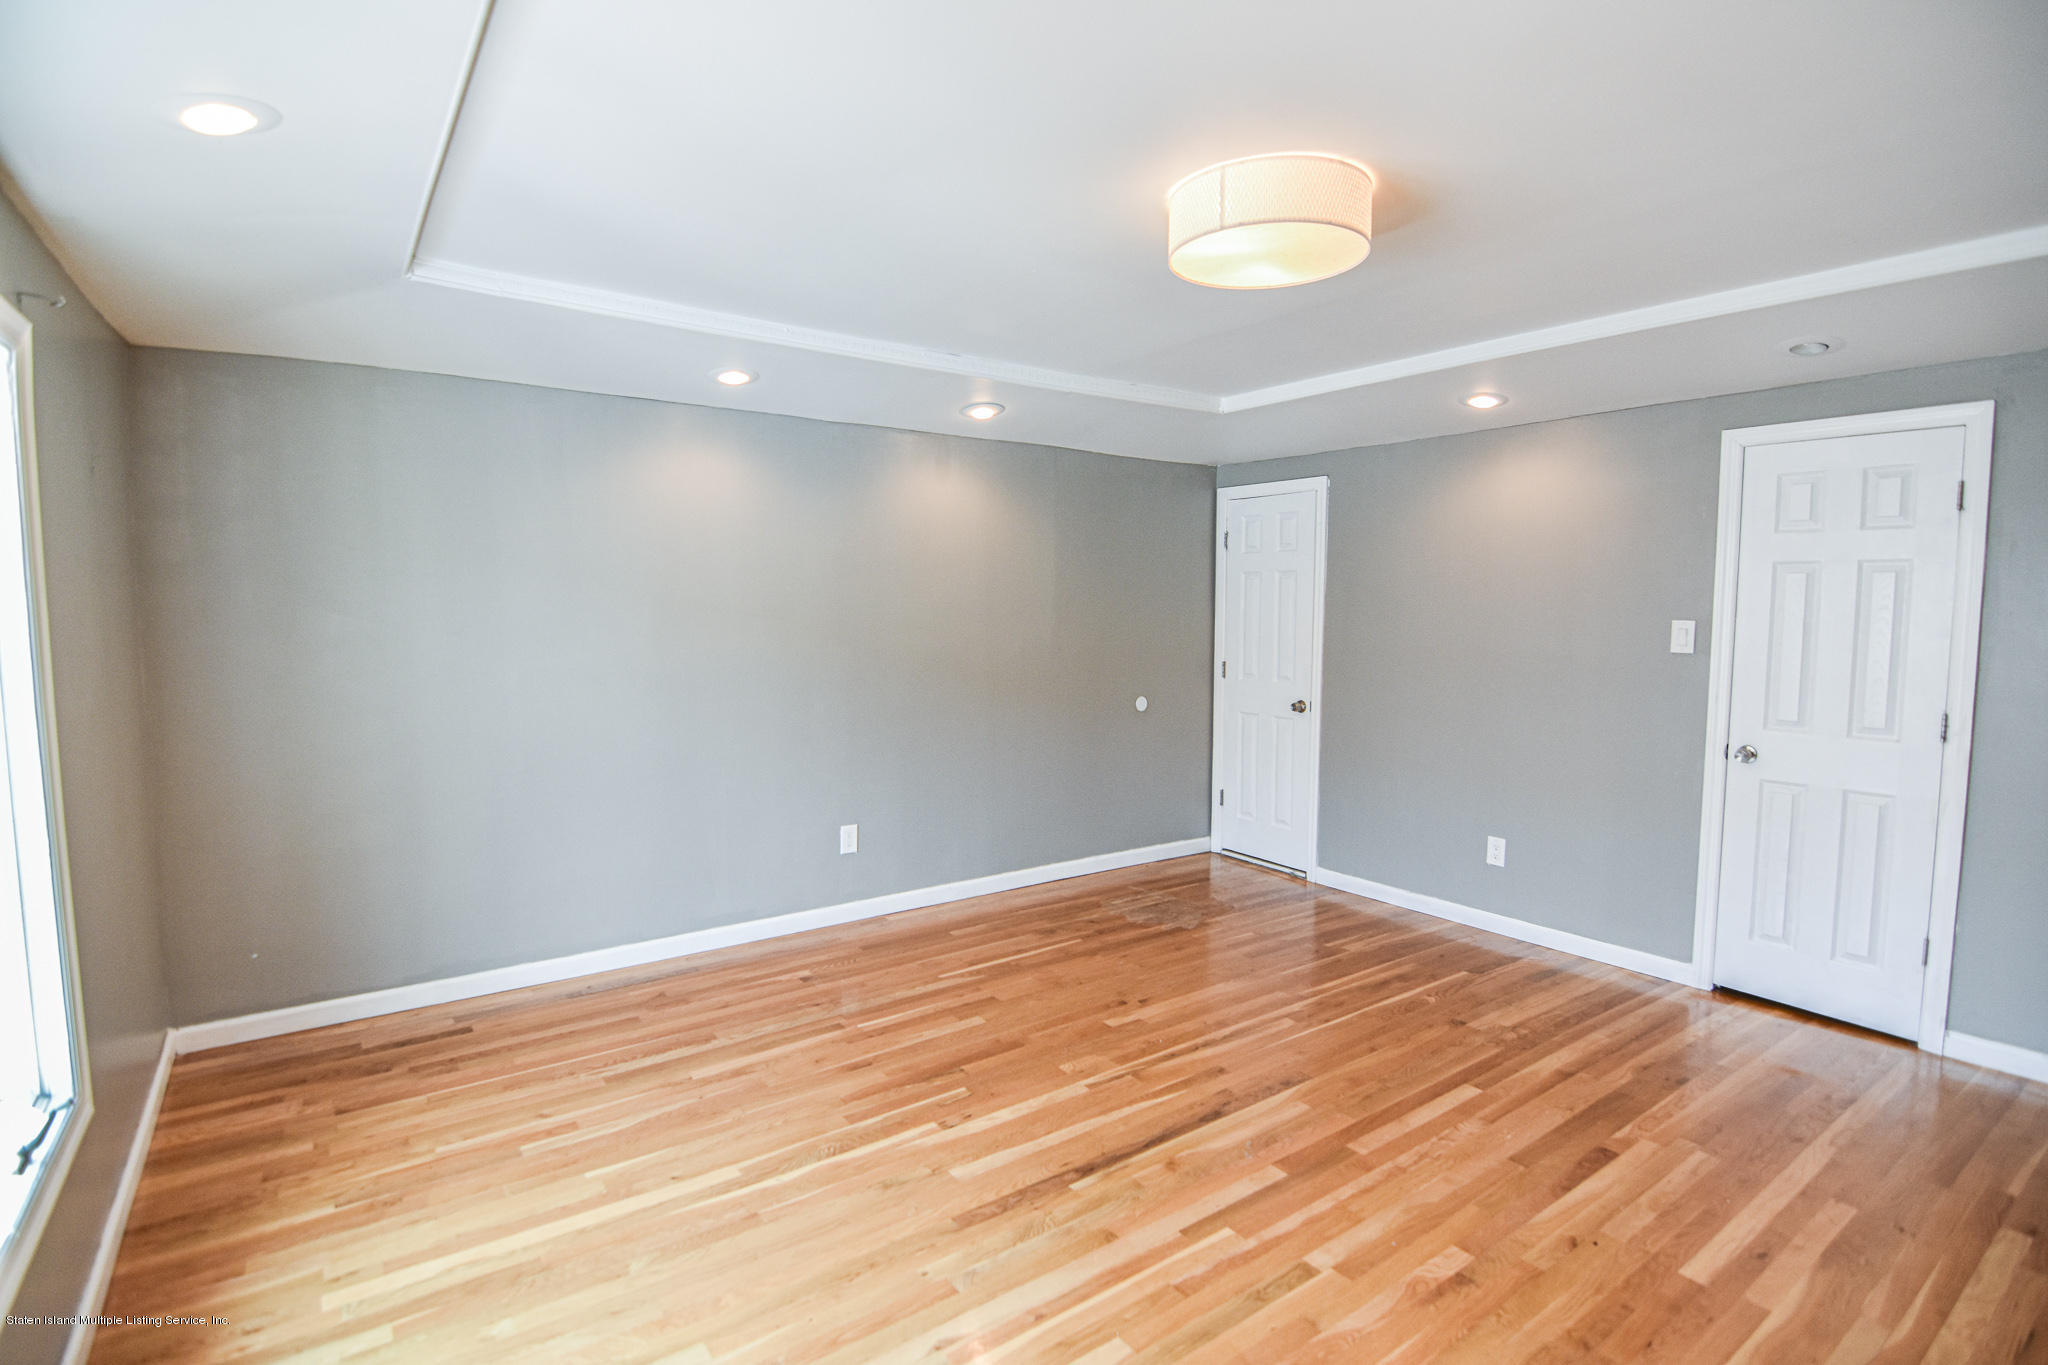 Single Family - Semi-Attached 12 Ebey Lane  Staten Island, NY 10312, MLS-1131132-11